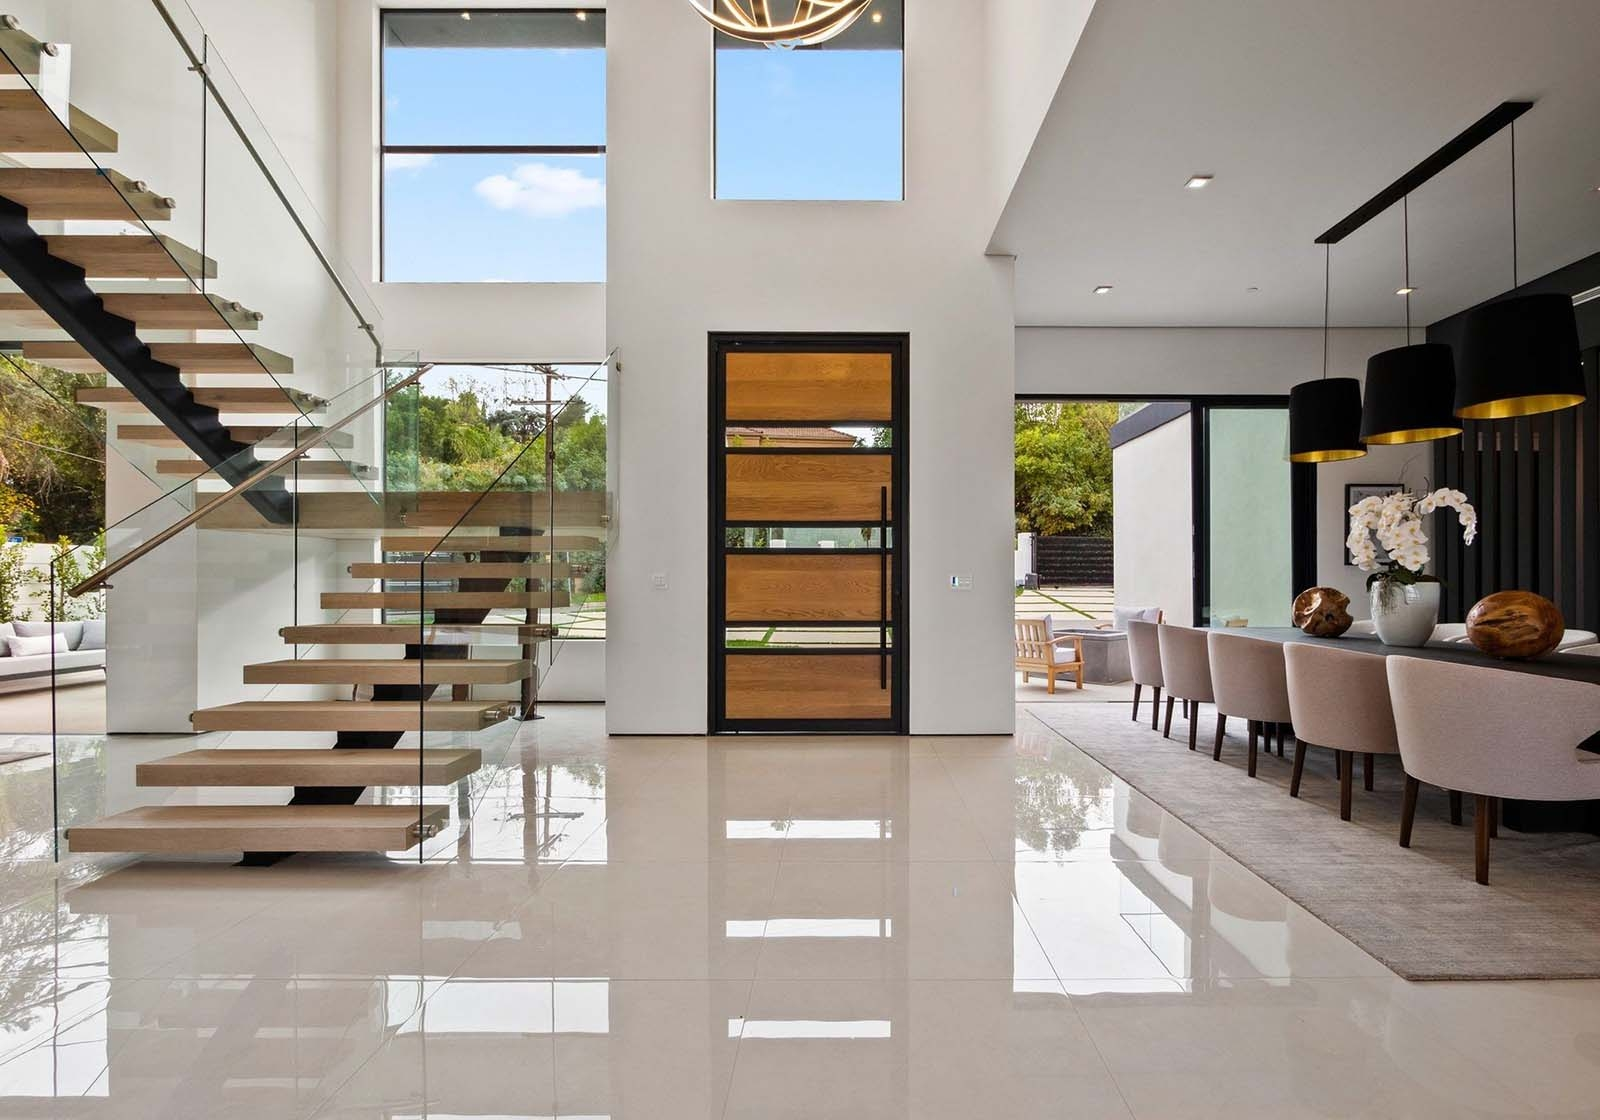 Modern Staircase Design Contemporary Stair Design Ideas | Modern Staircase Window Design | Architecture | Small House Stair | Section Window | Elegant | Wooden